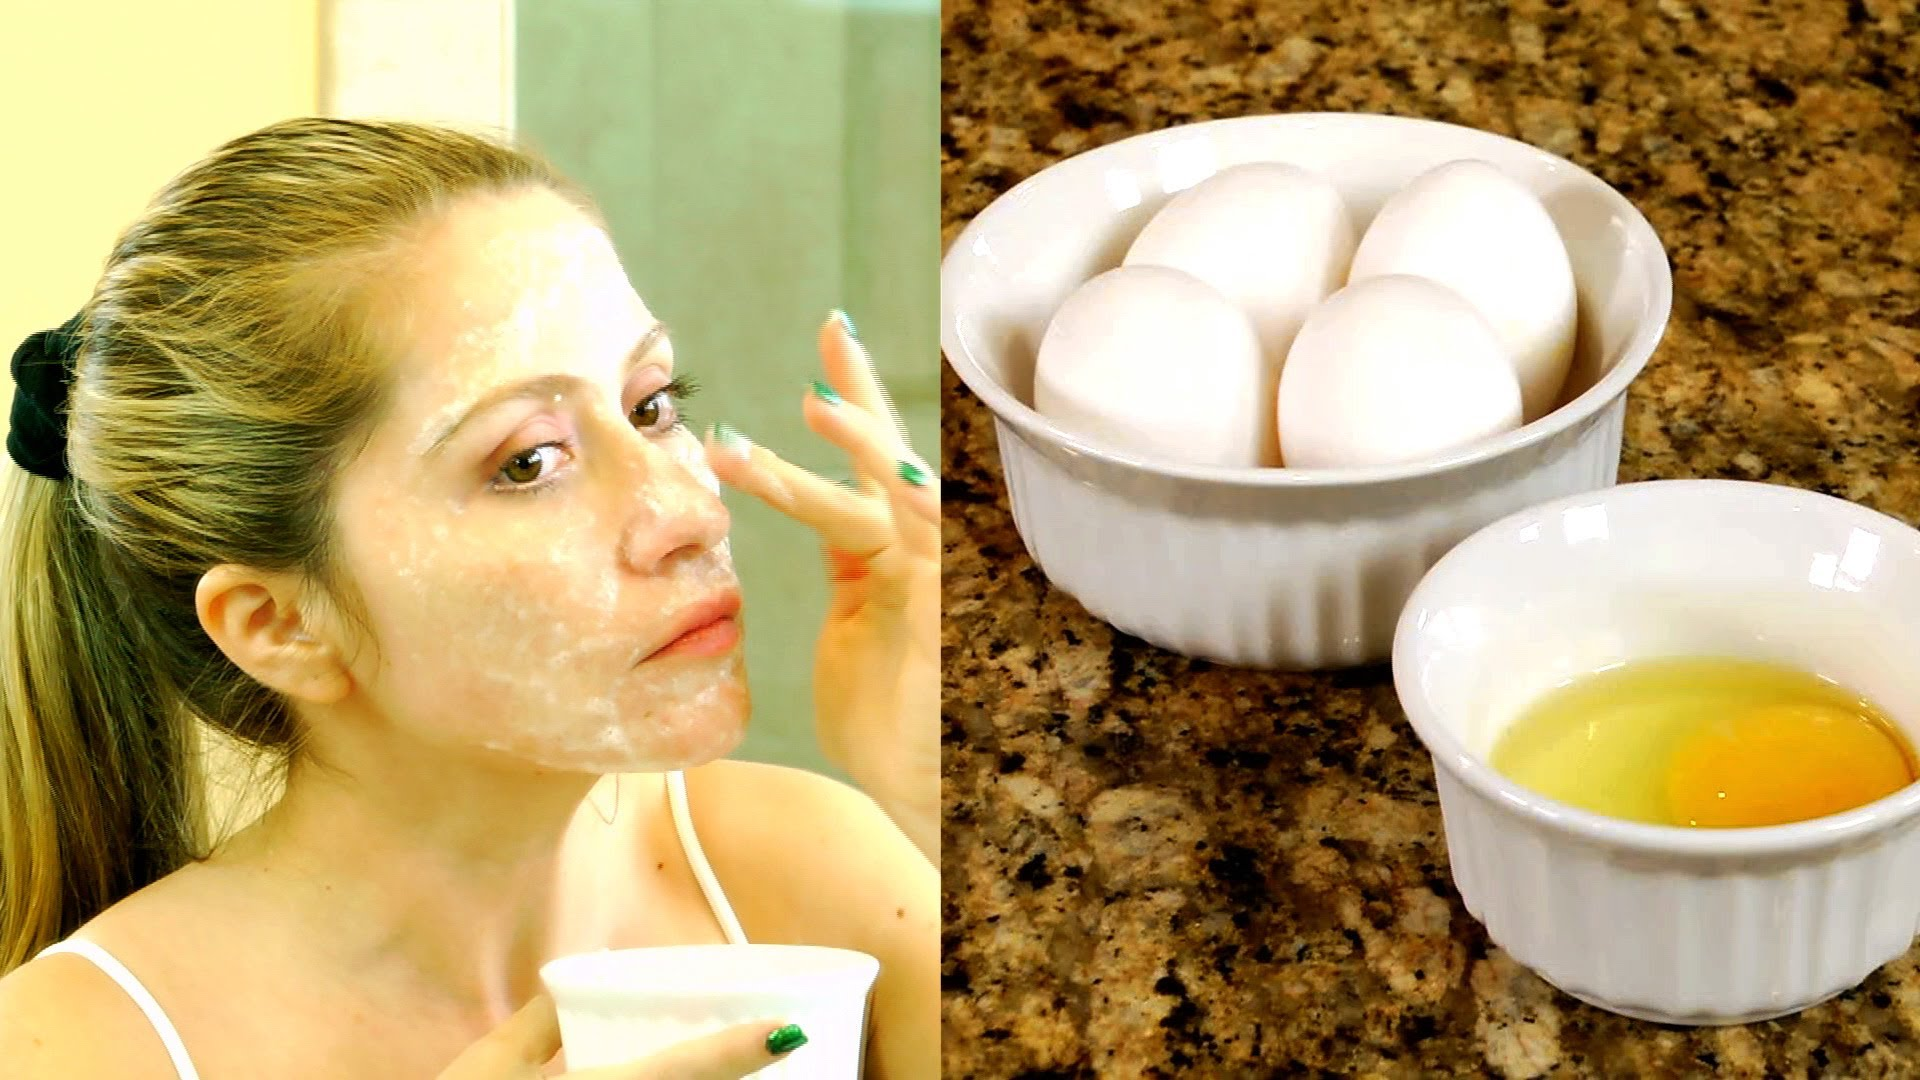 maxresdefault 10 Best Natural Ways To Get Rid Of Wrinkles 10 Best Natural Ways To Get Rid Of Wrinkles maxresdefault